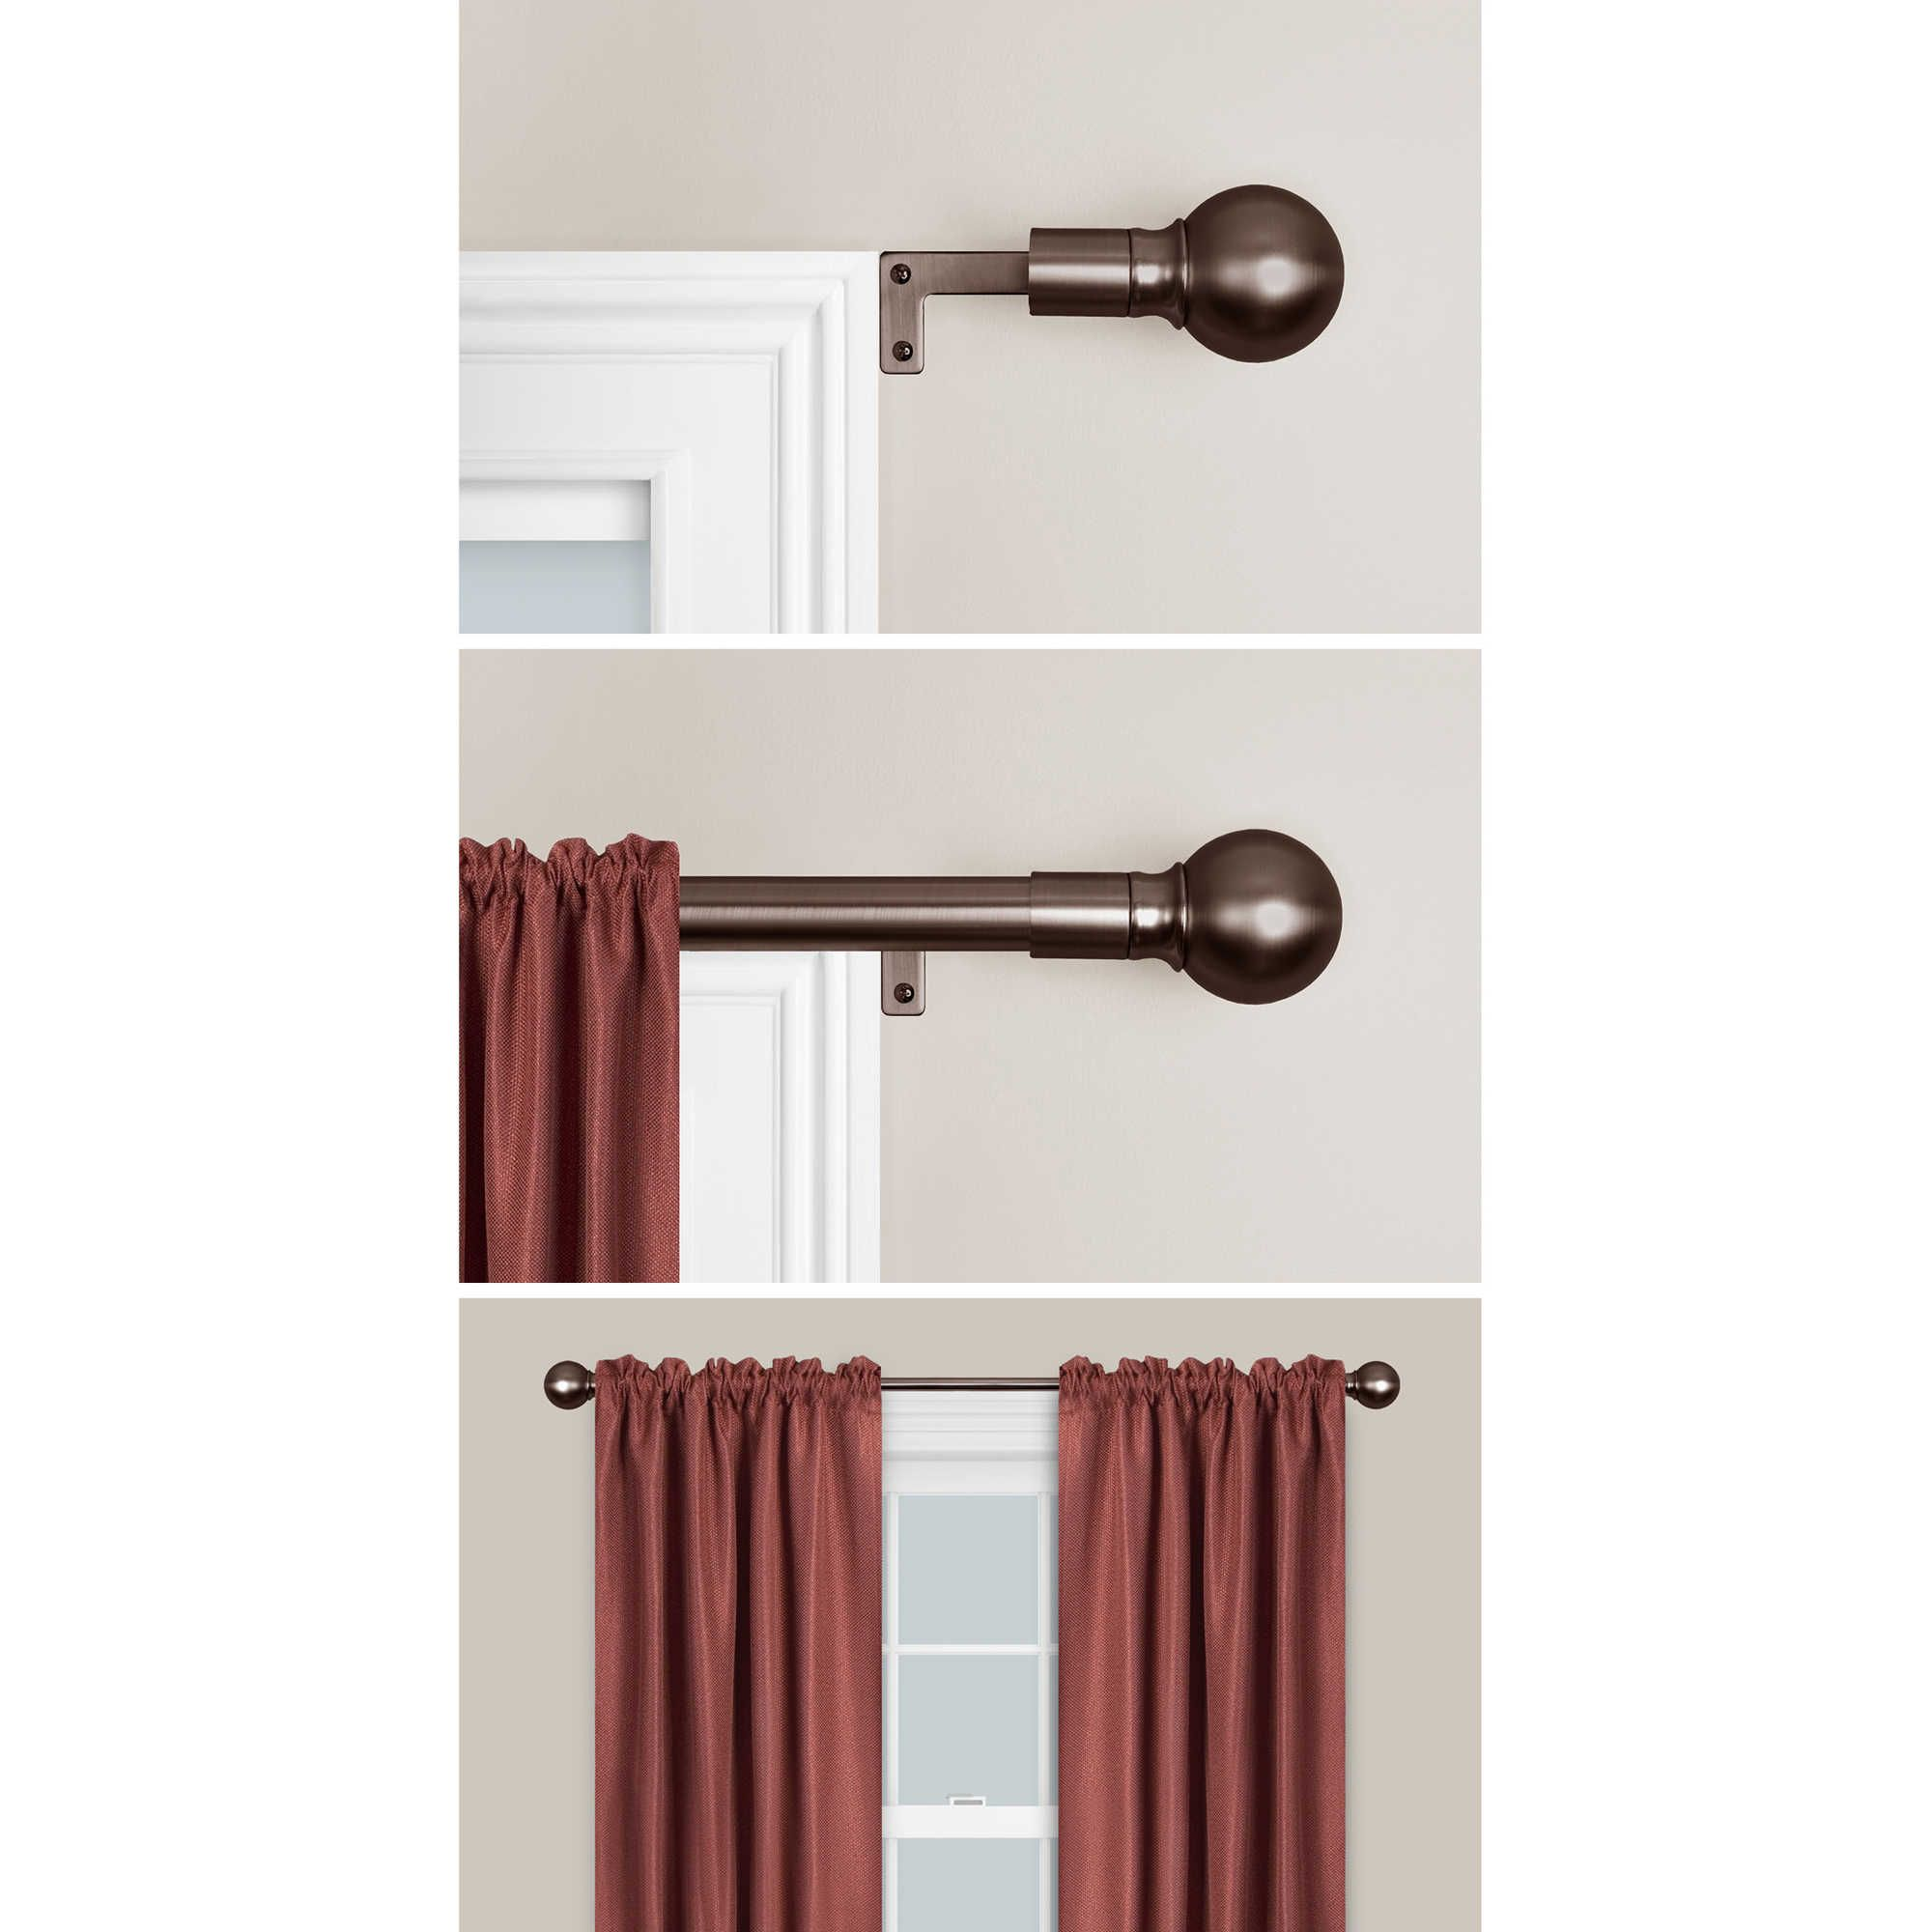 Maytex Smart Rods Easy Install Window Curtain Rod Curtain Rods